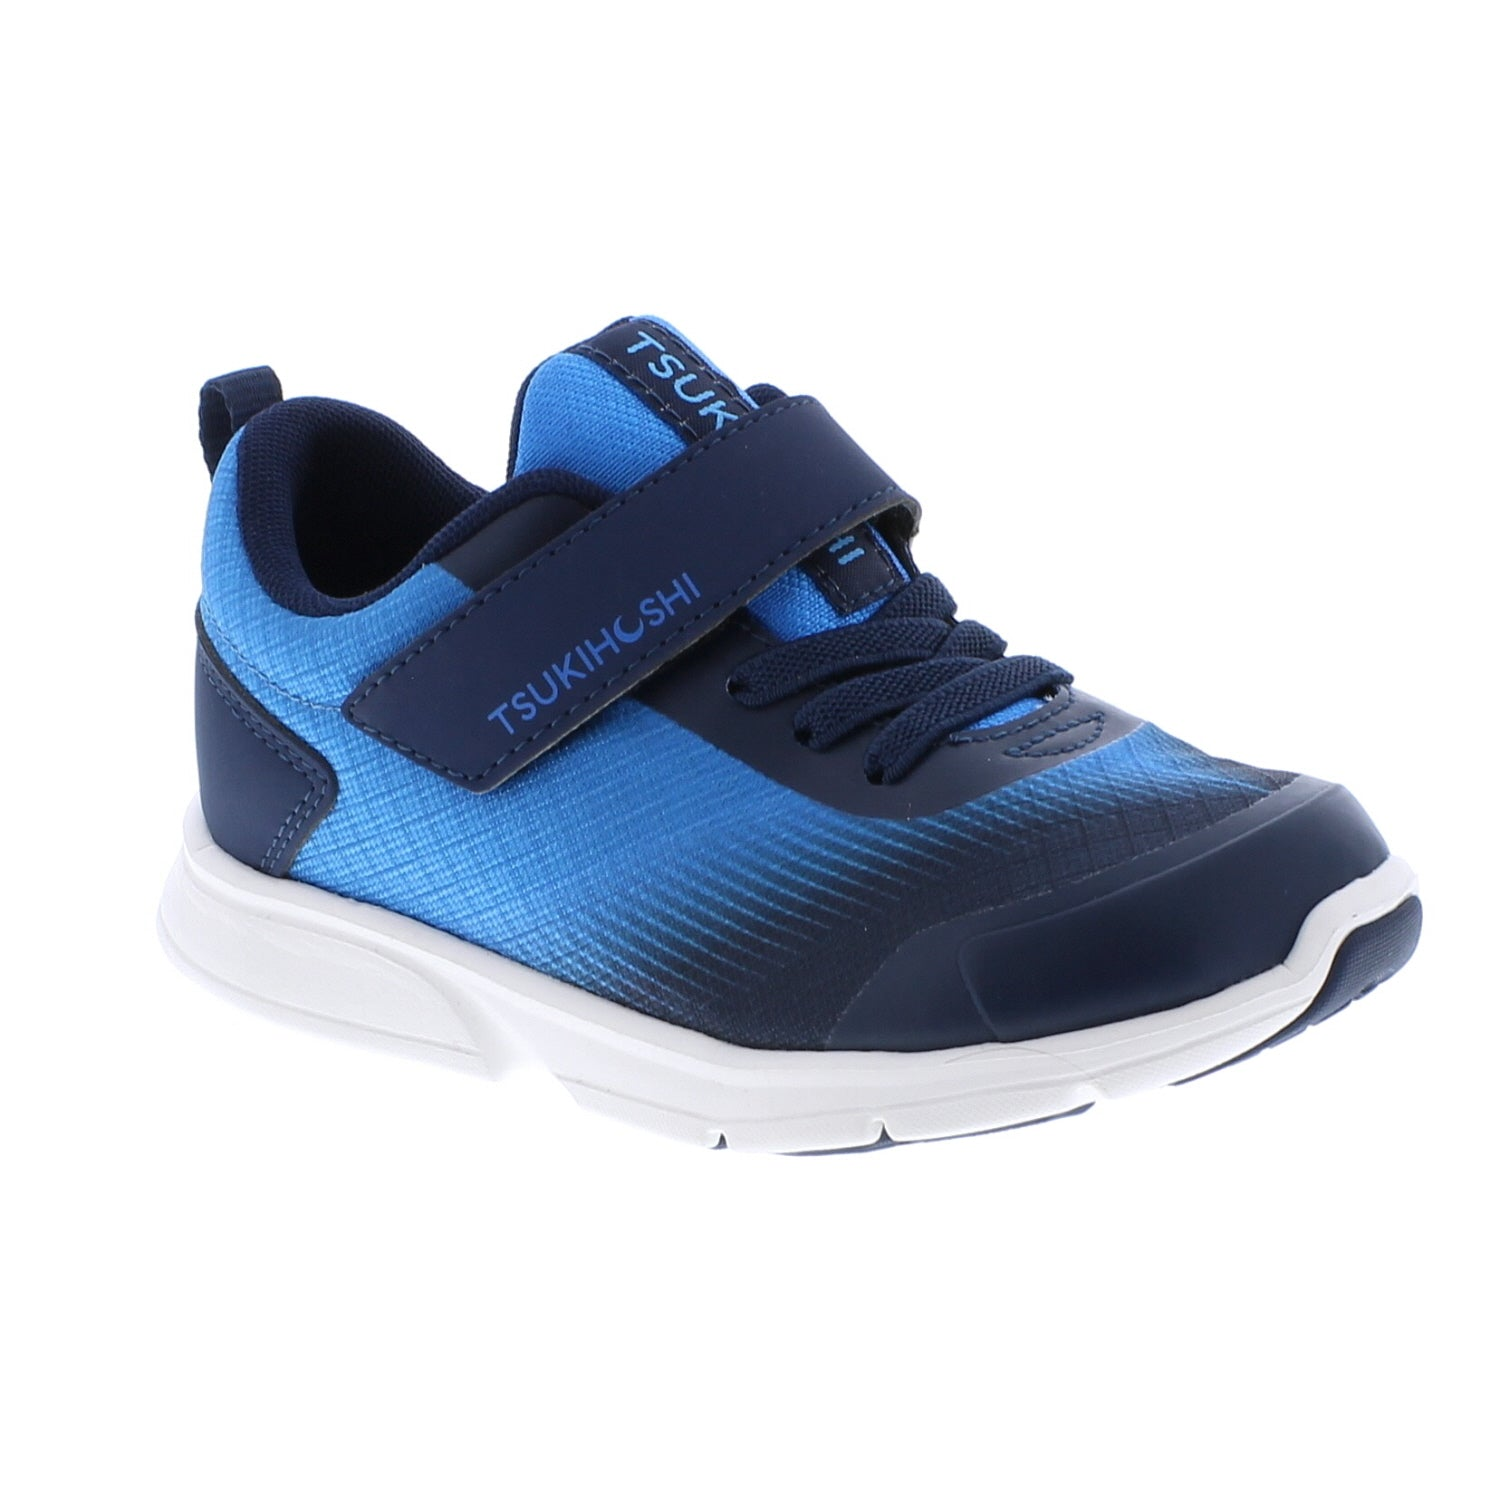 Turbo Sneaker - Blue/Navy